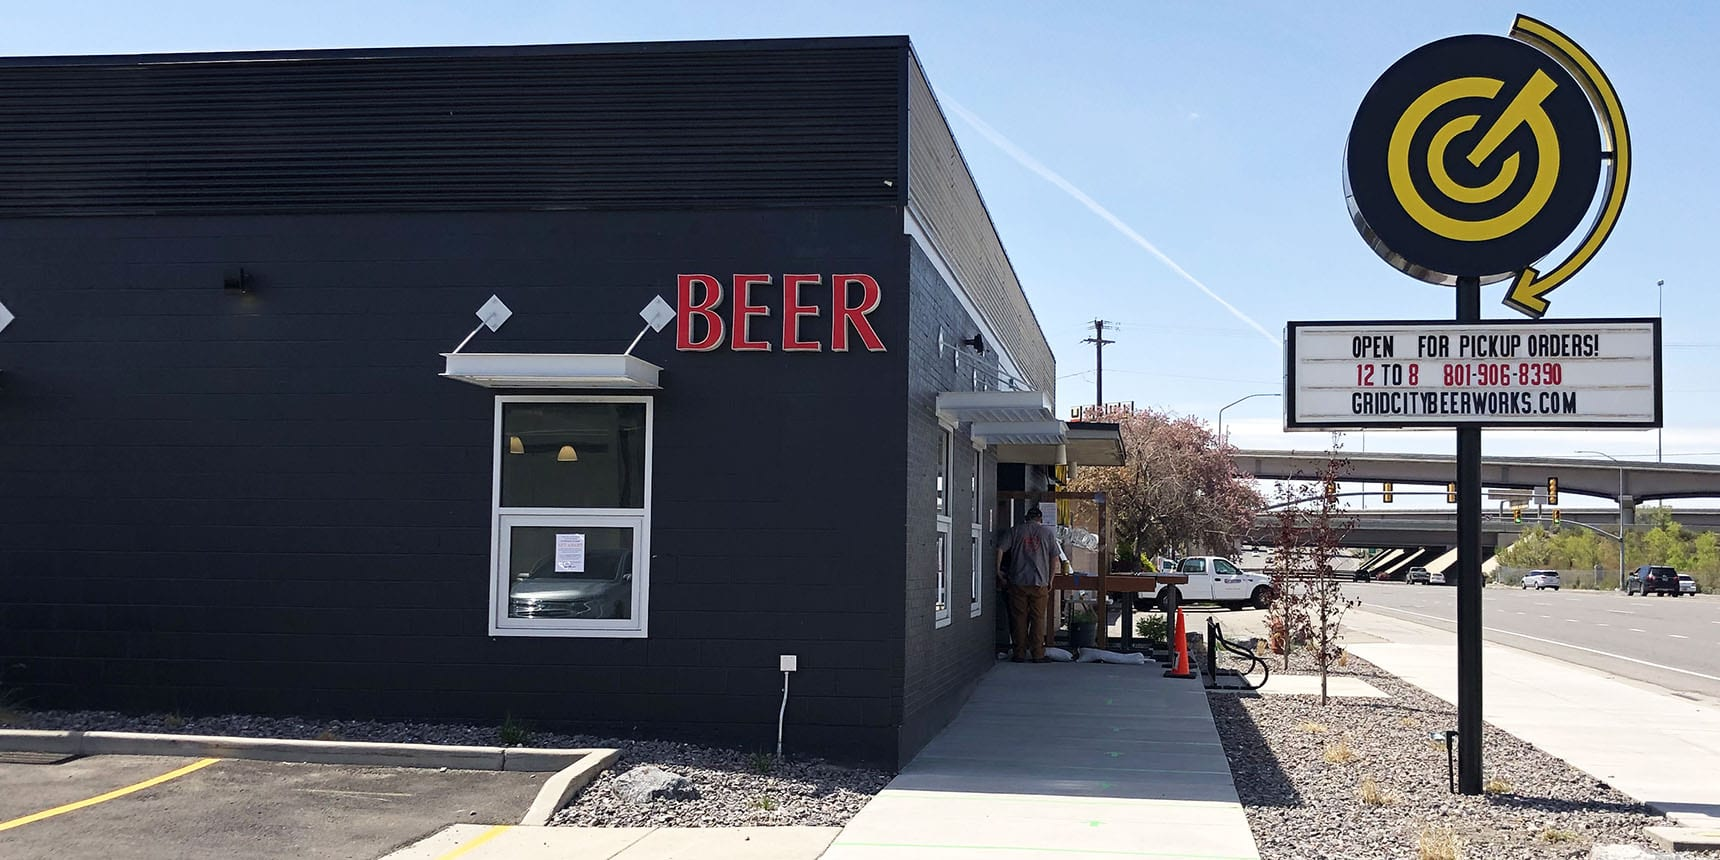 Grid City Beer Works opened for to-go food and beer orders on April 23, 2020.